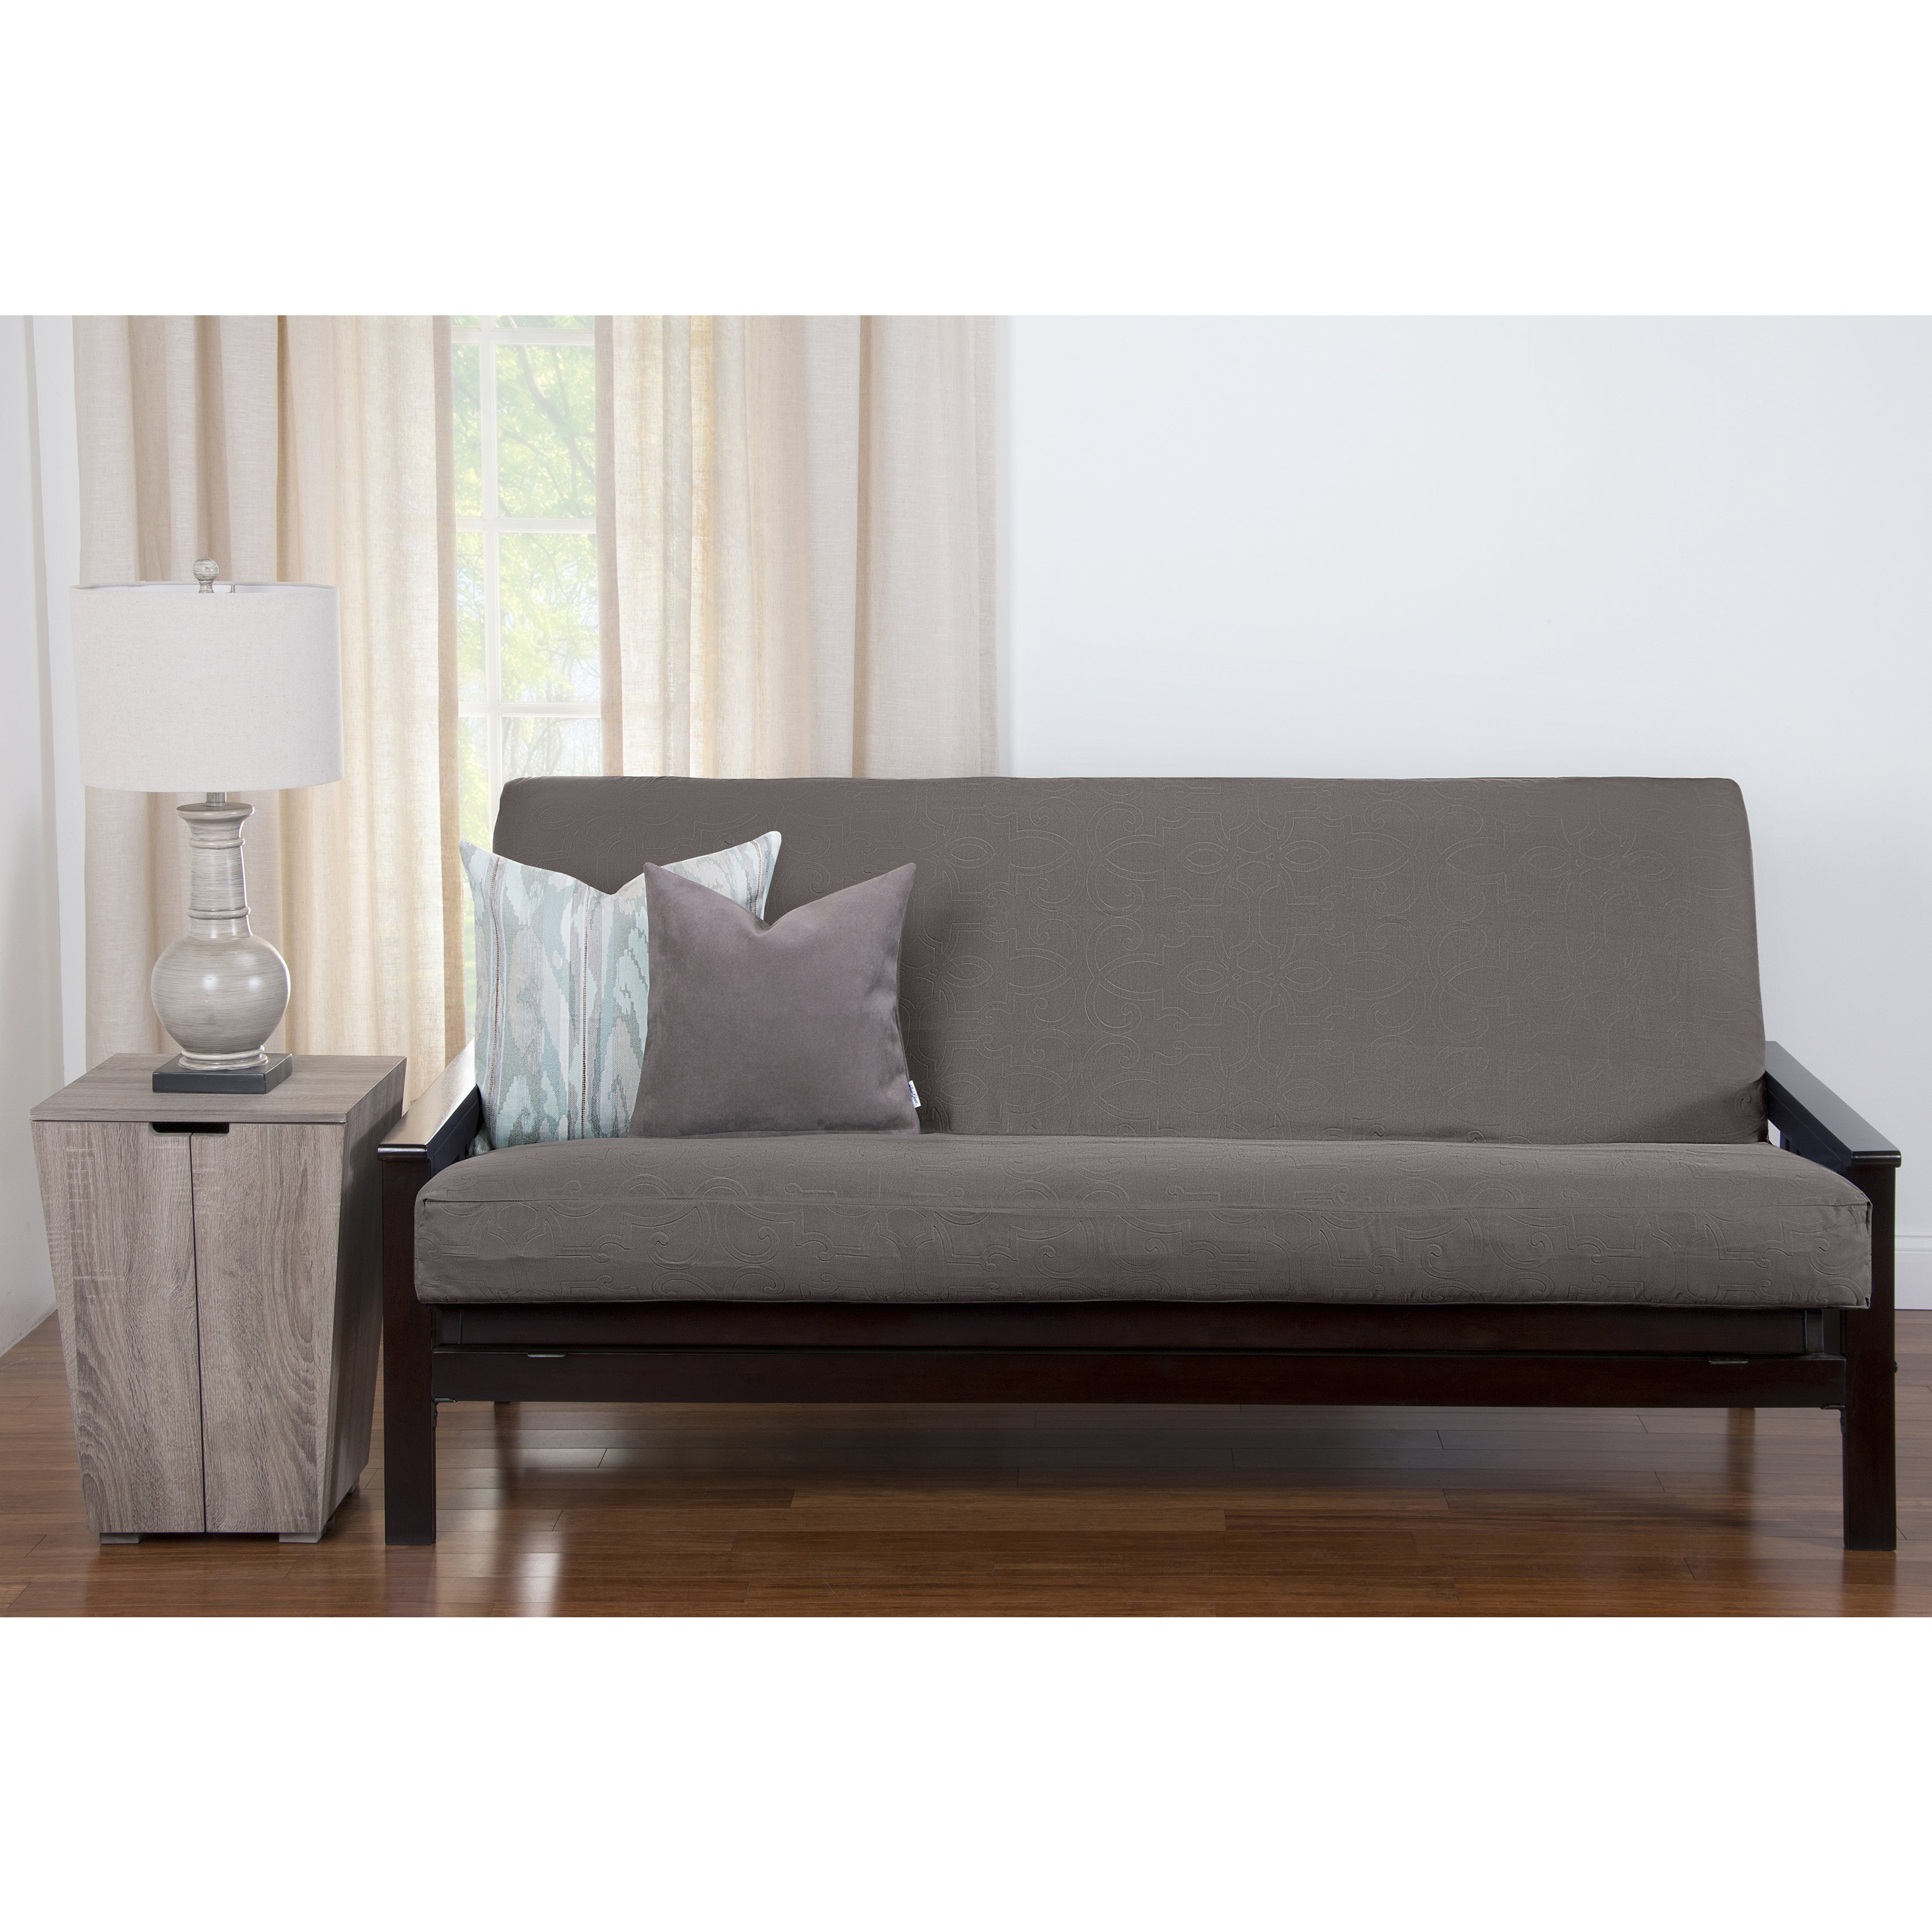 Marble Futon Covers Queen Size Sis